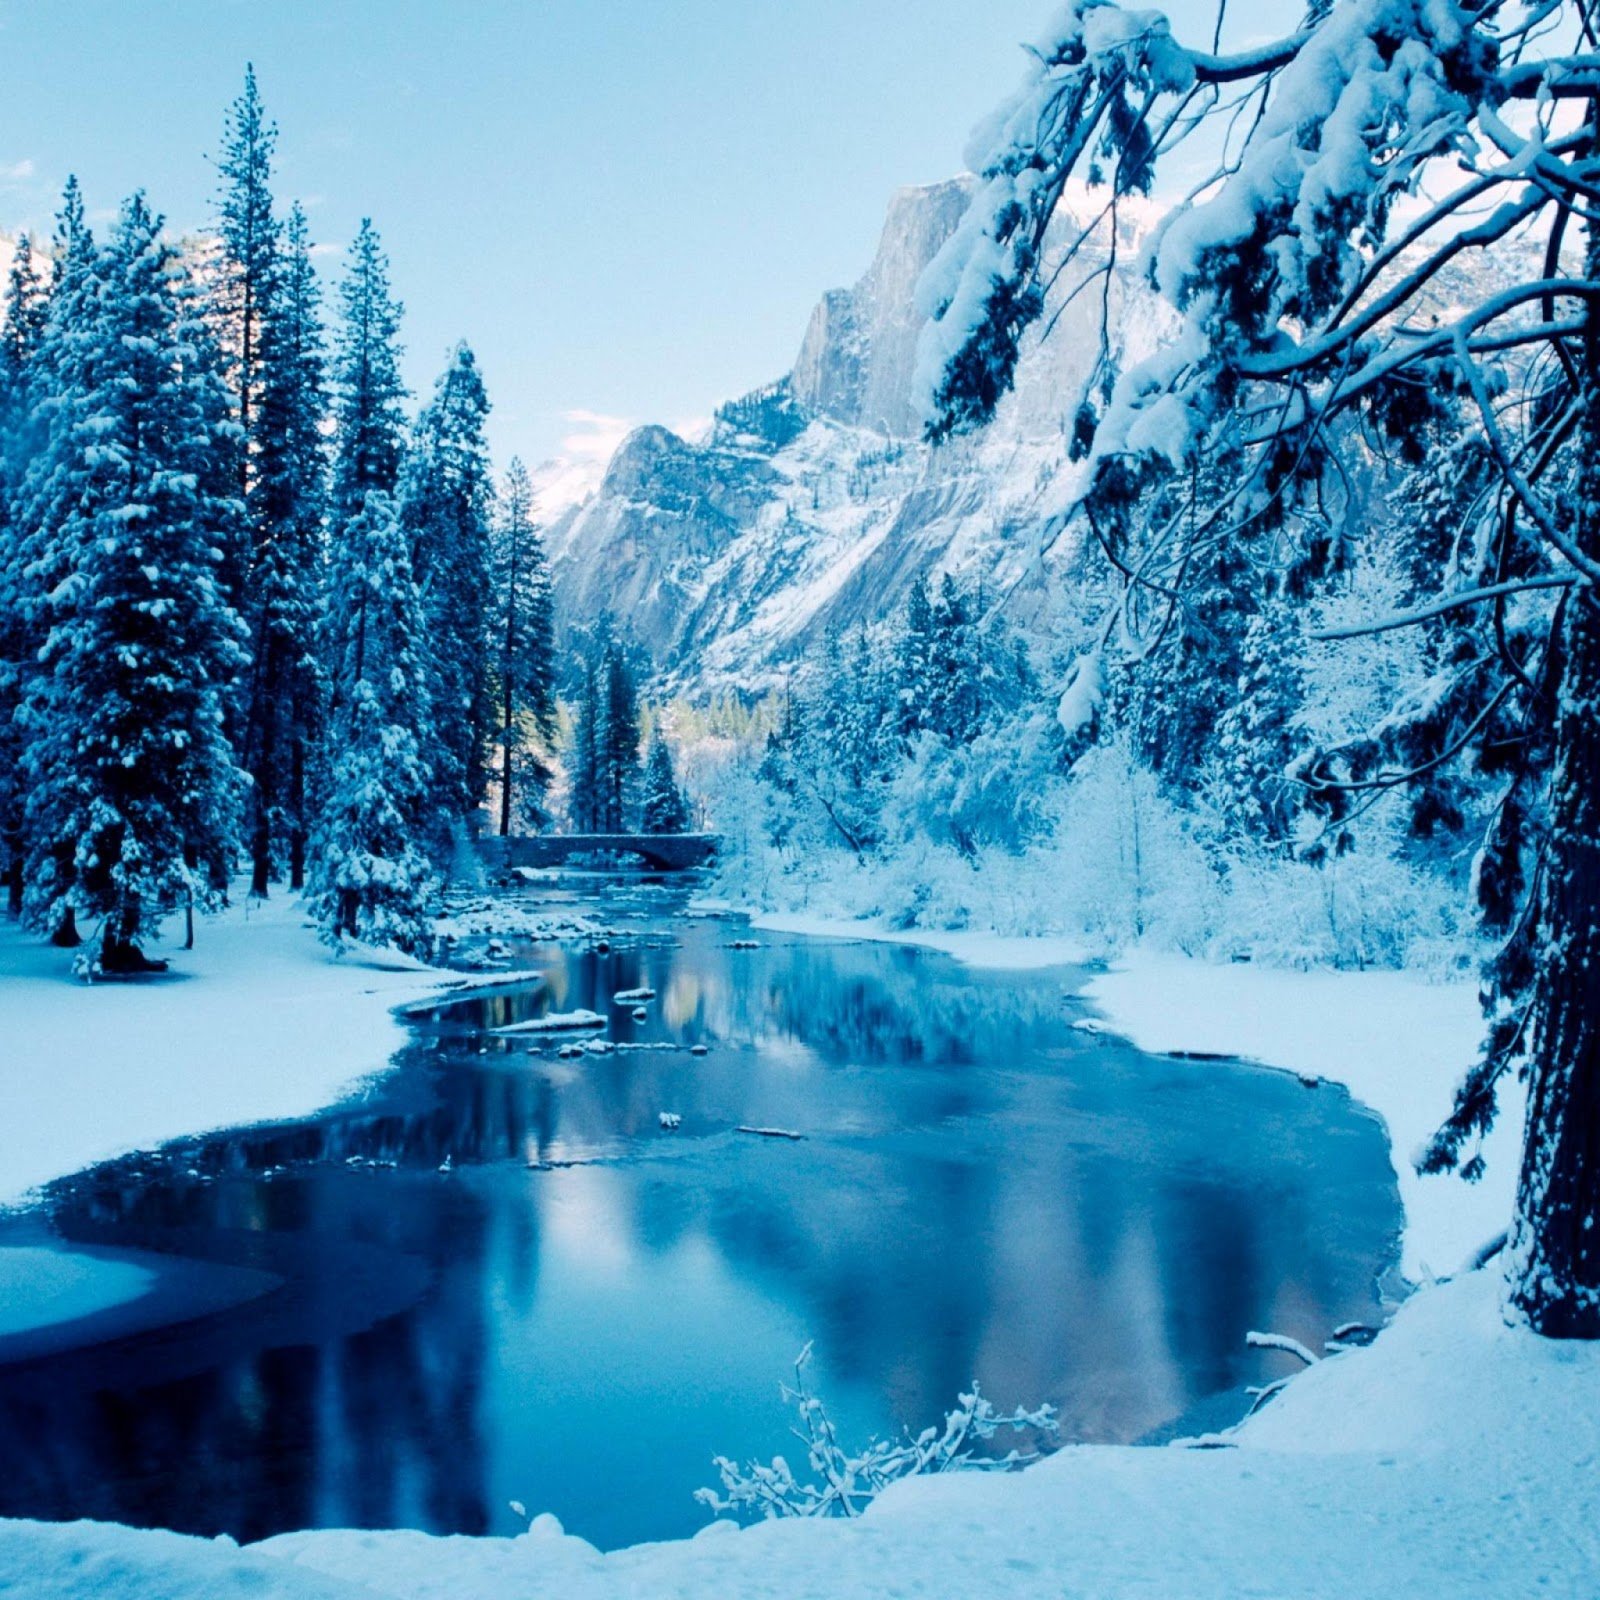 Winter Wallpaper For Ipad Winter Themed HD Wallpapers for iPad Gadgets Apps and Flash Games